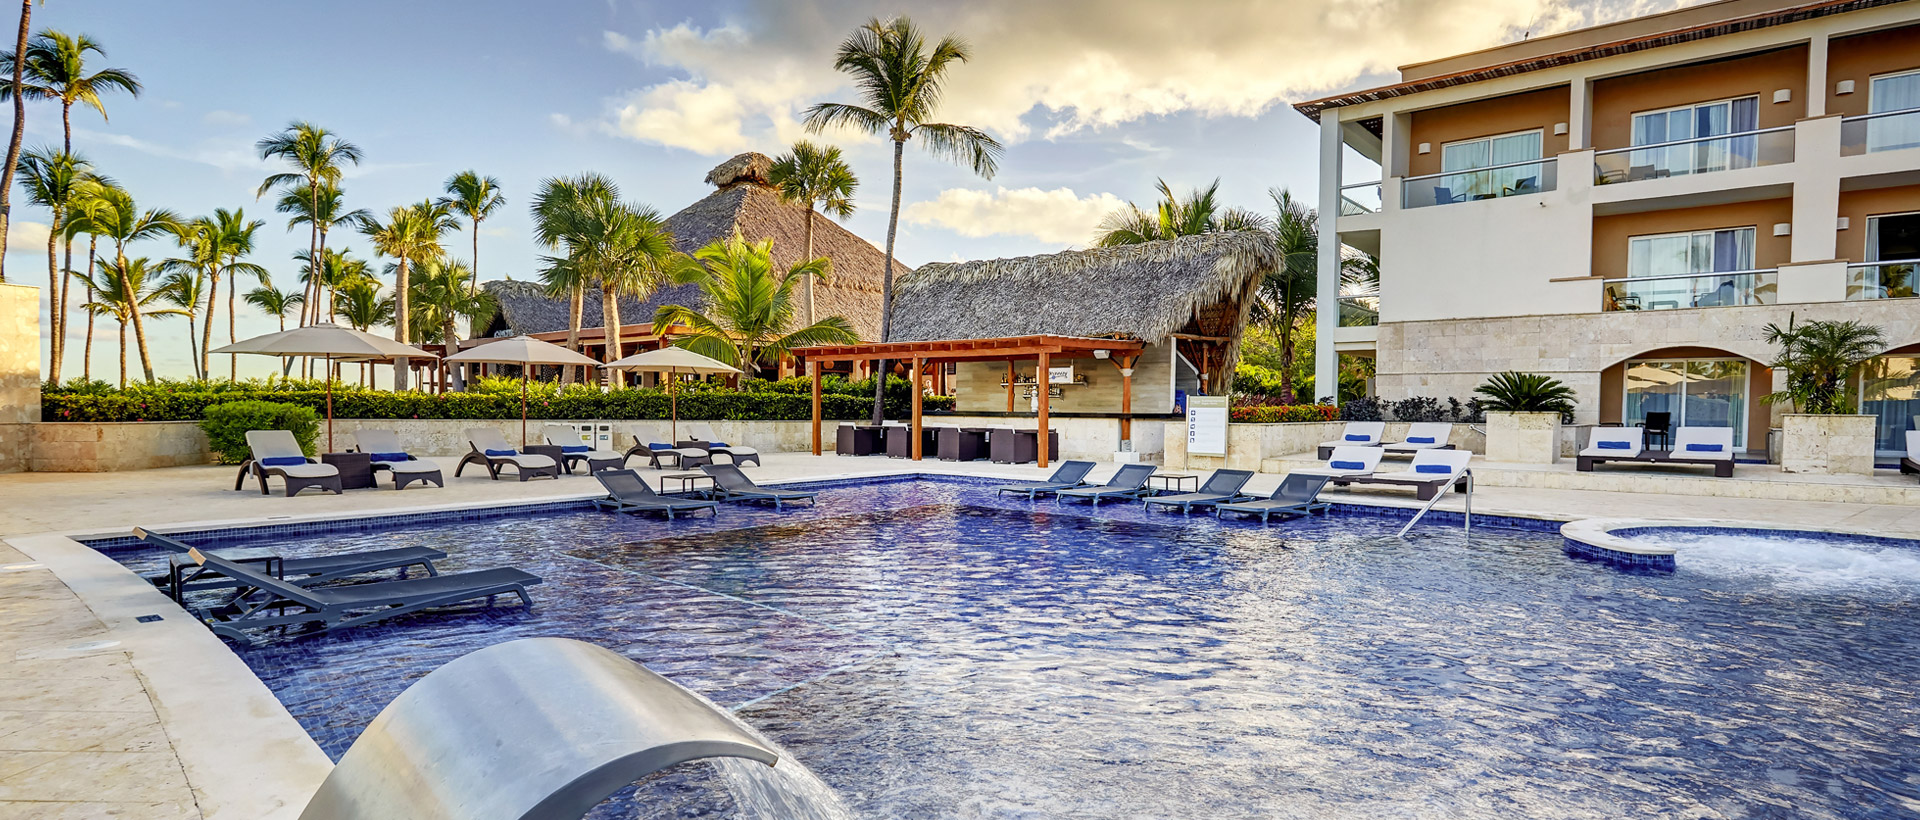 Hideaway at Royalton Punta Cana, An Autograph Collection All-Inclusive Resort & Casino